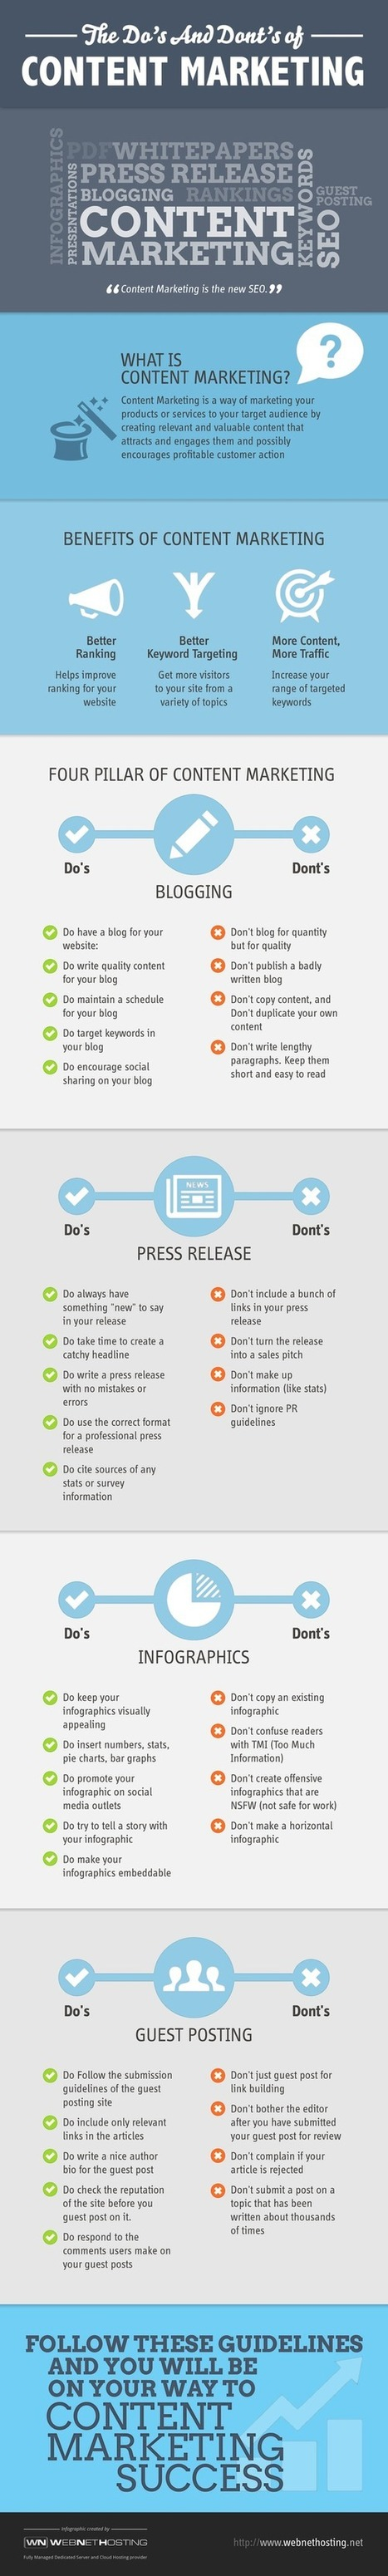 The Do's and Dont's of Content Marketing - Infographic | Premium Content Marketing | Scoop.it